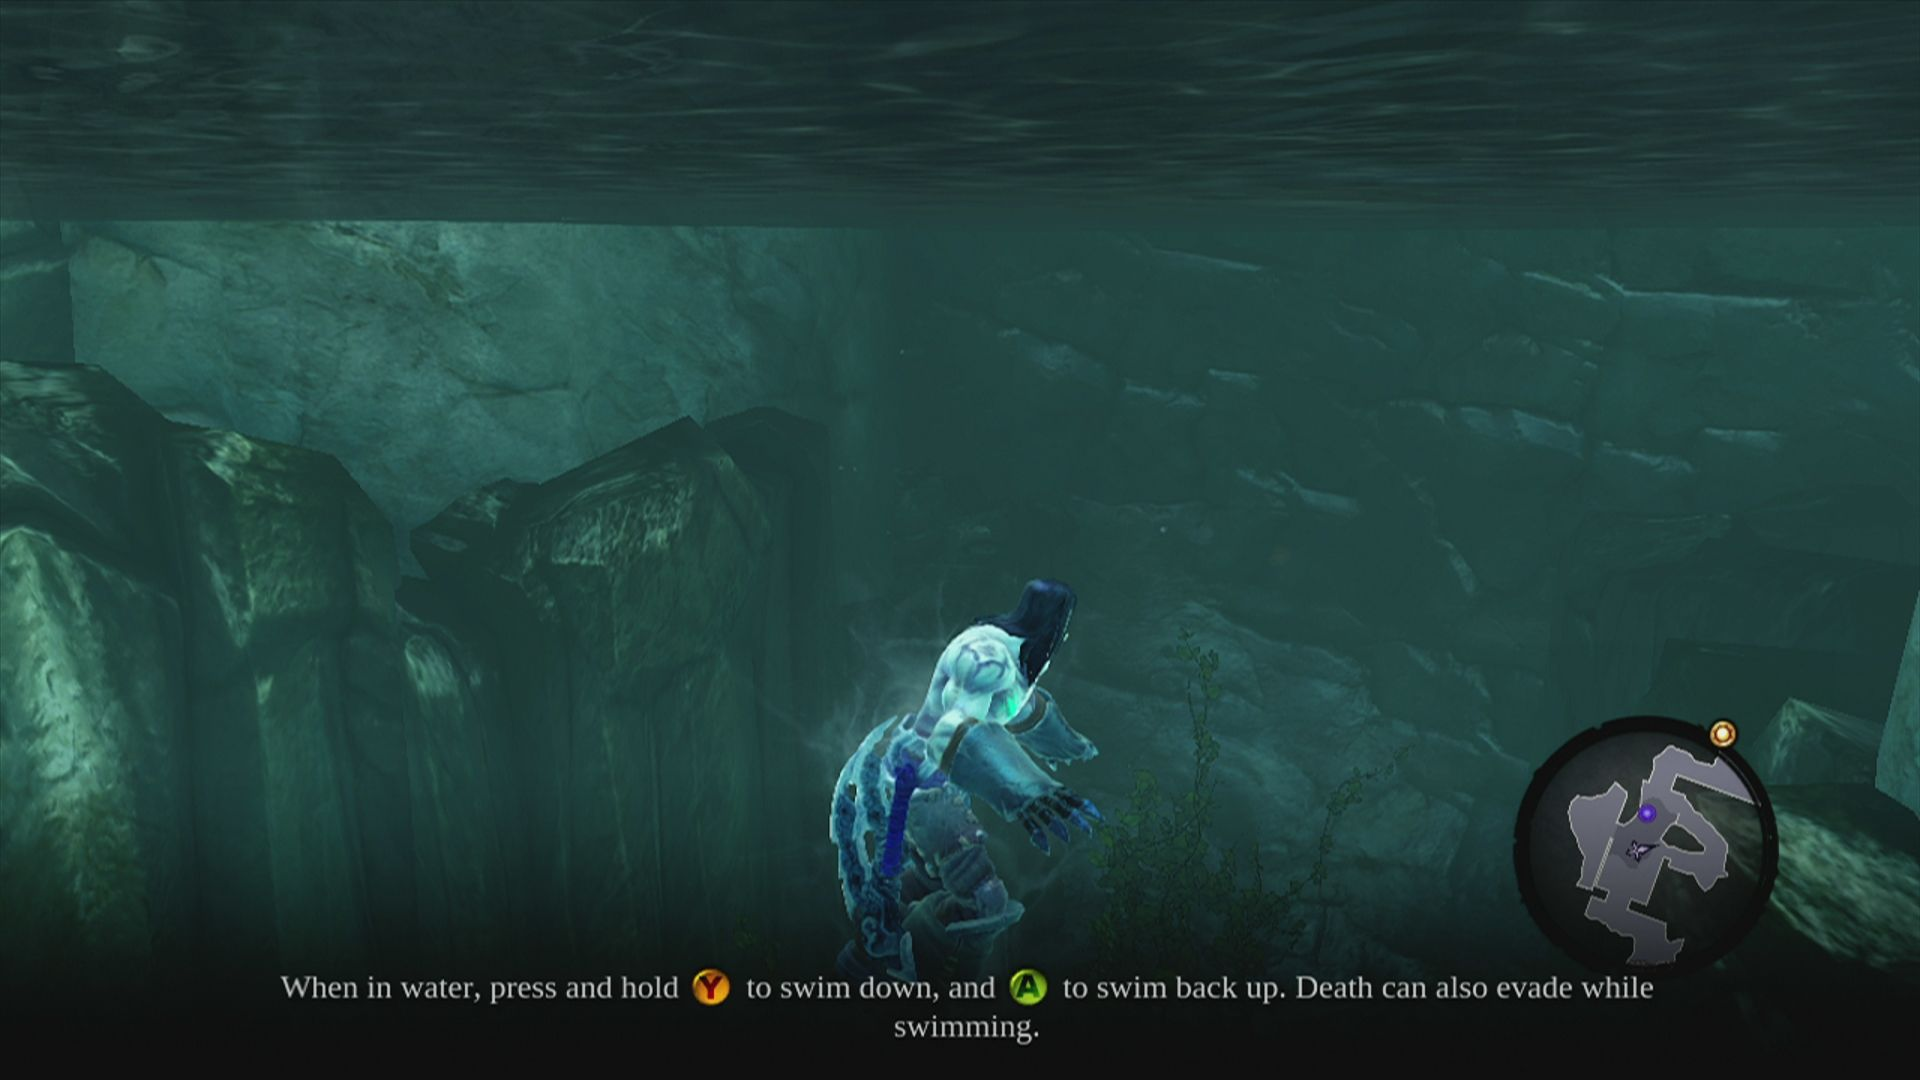 Darksiders II Xbox 360 You can also swim and dive in the game